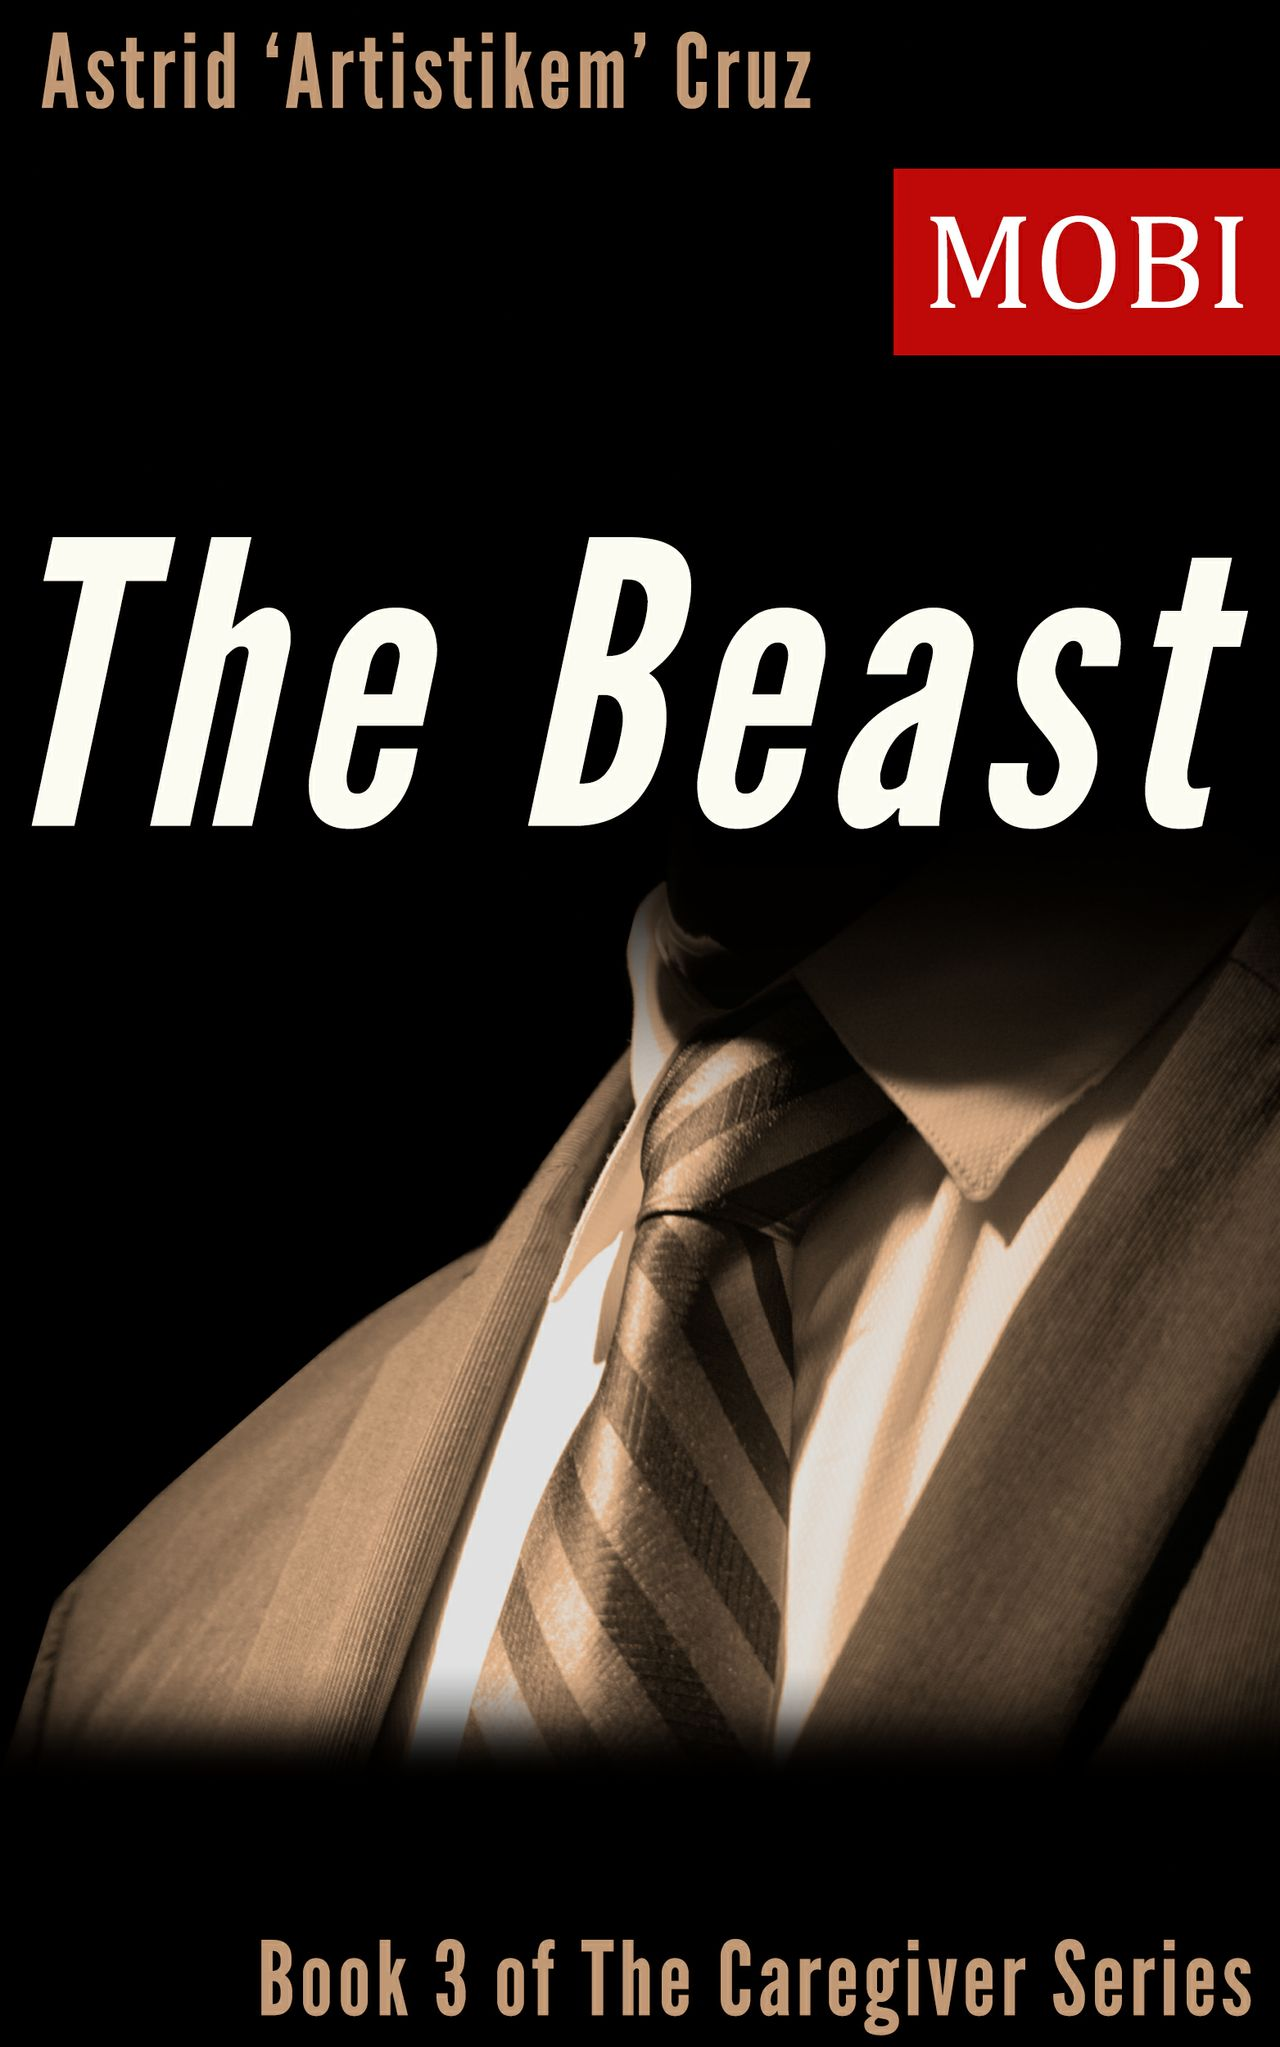 The Beast (Book 3 of The Caregiver Series) - mobi